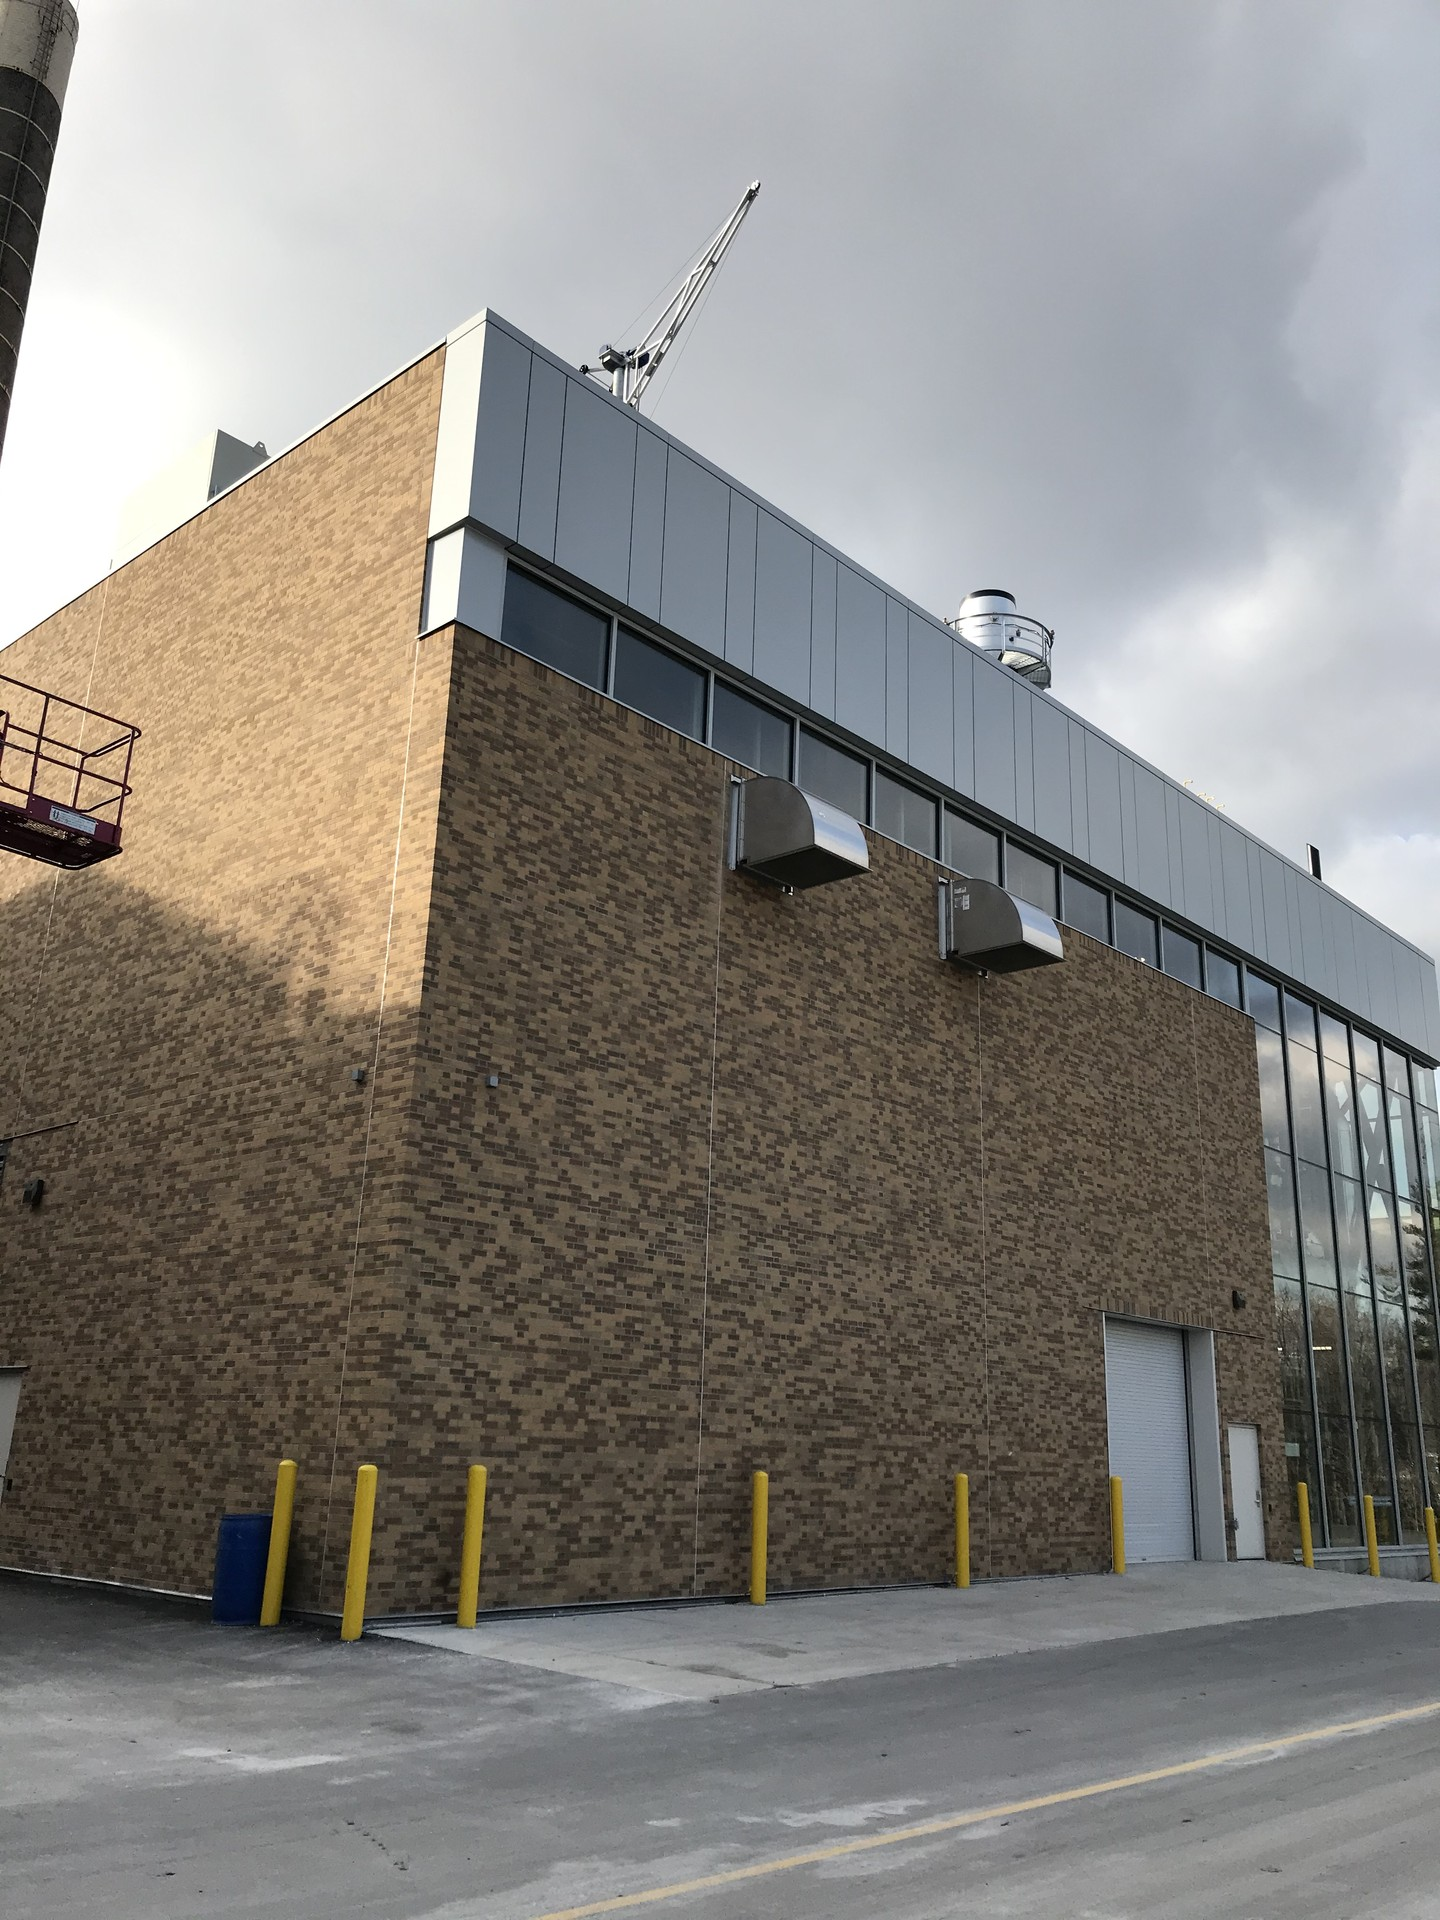 Hero Image of Sunnybrook Health Sciences Centre - Combined Heating and Power Plant